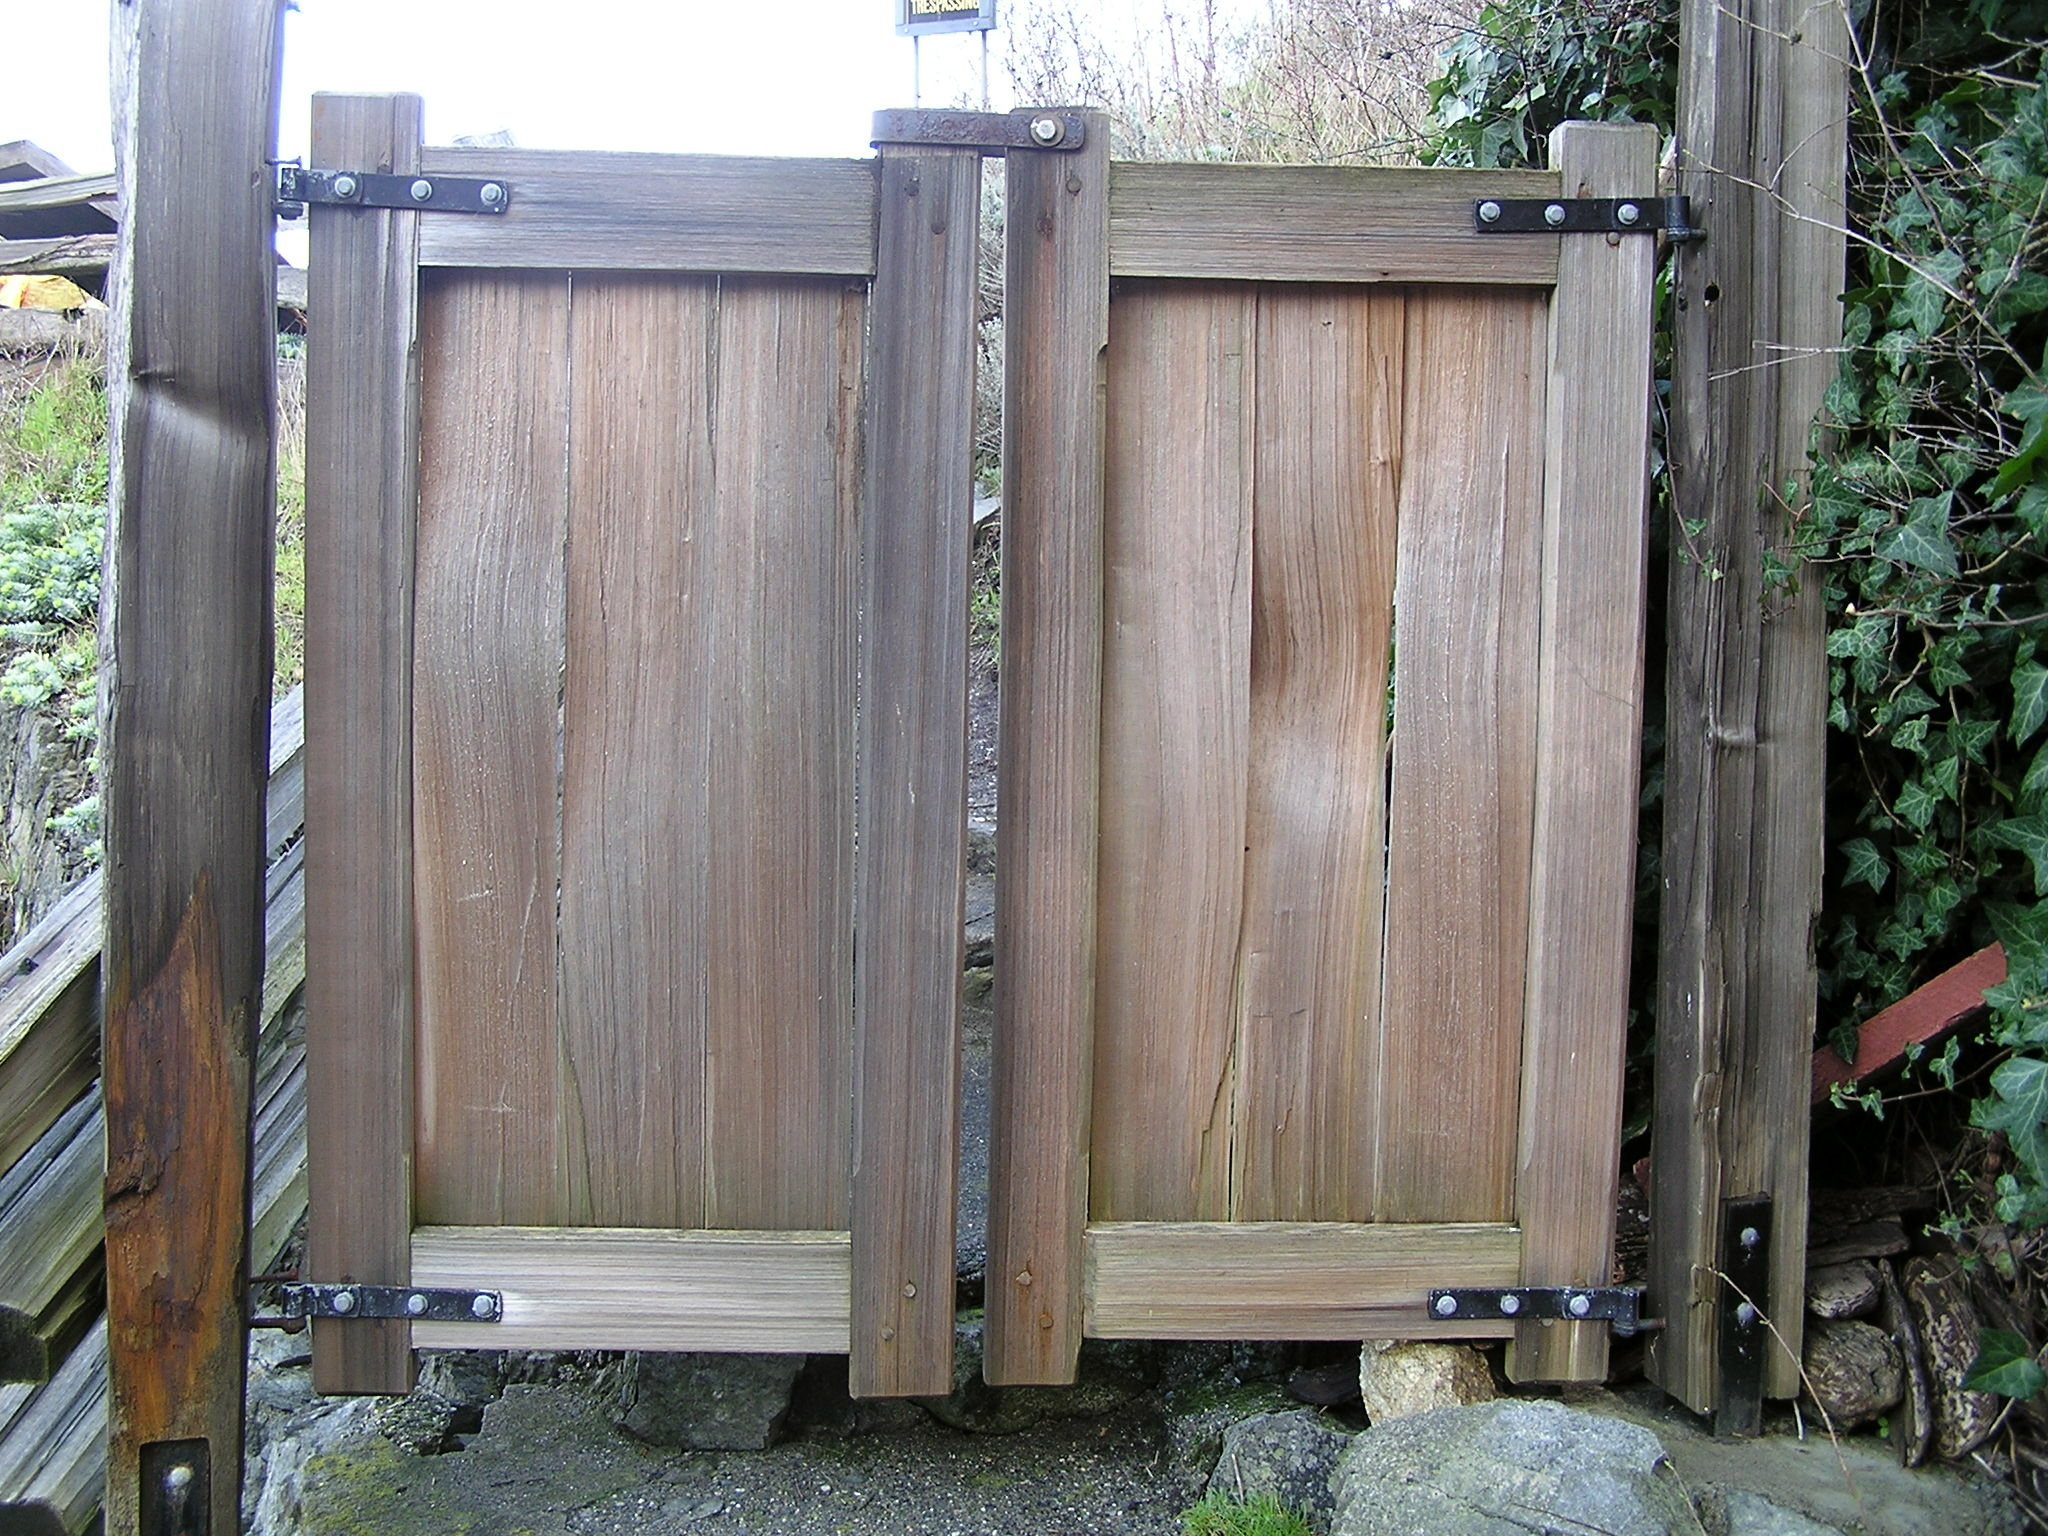 wood fence double gate. Double Gates To The Beach Wood Fence Gate